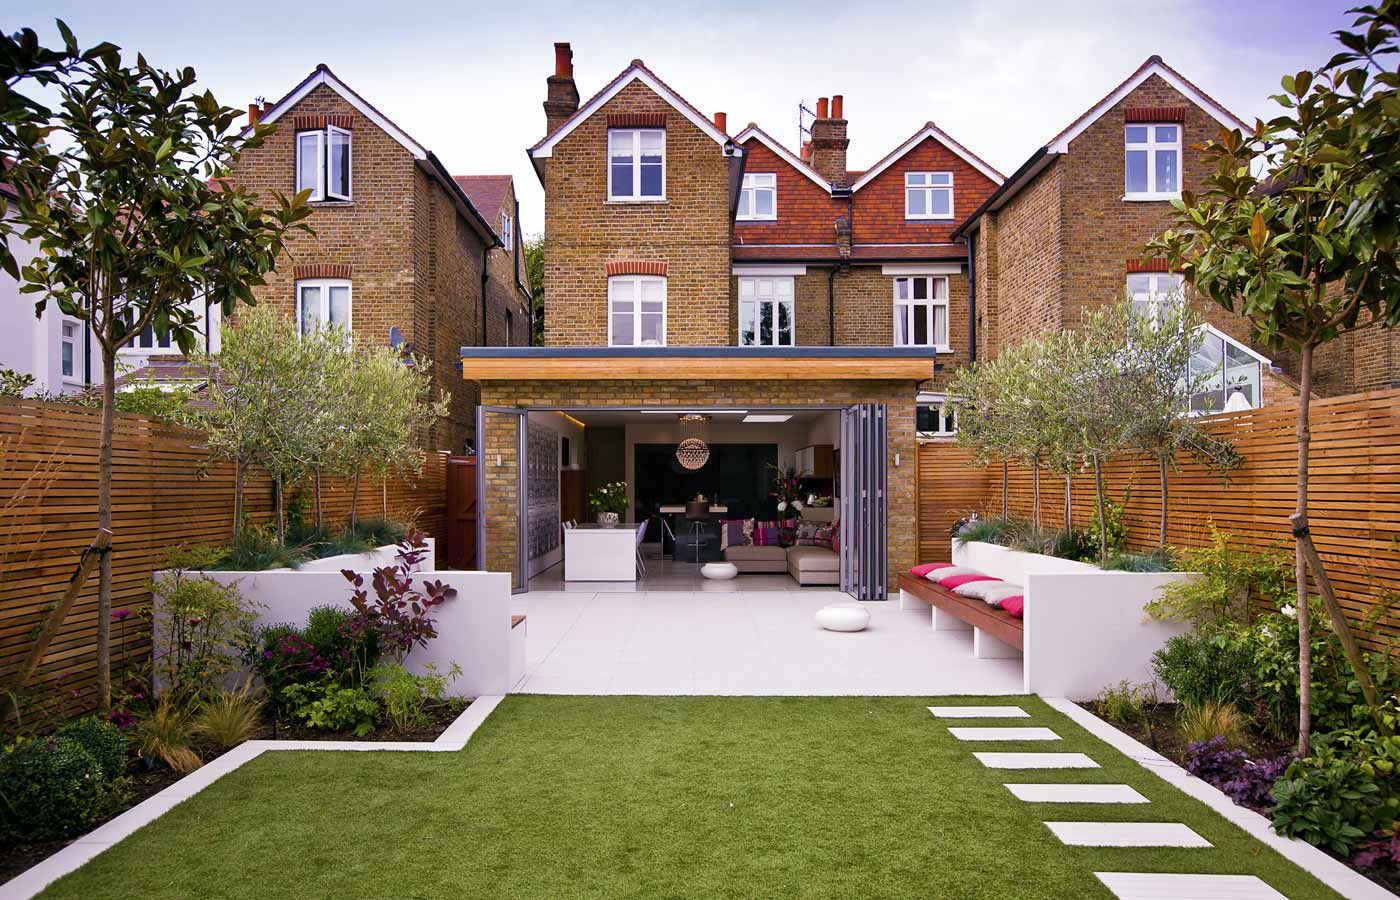 Small narrow garden design ideas backyard oasis for Small terraced house garden ideas